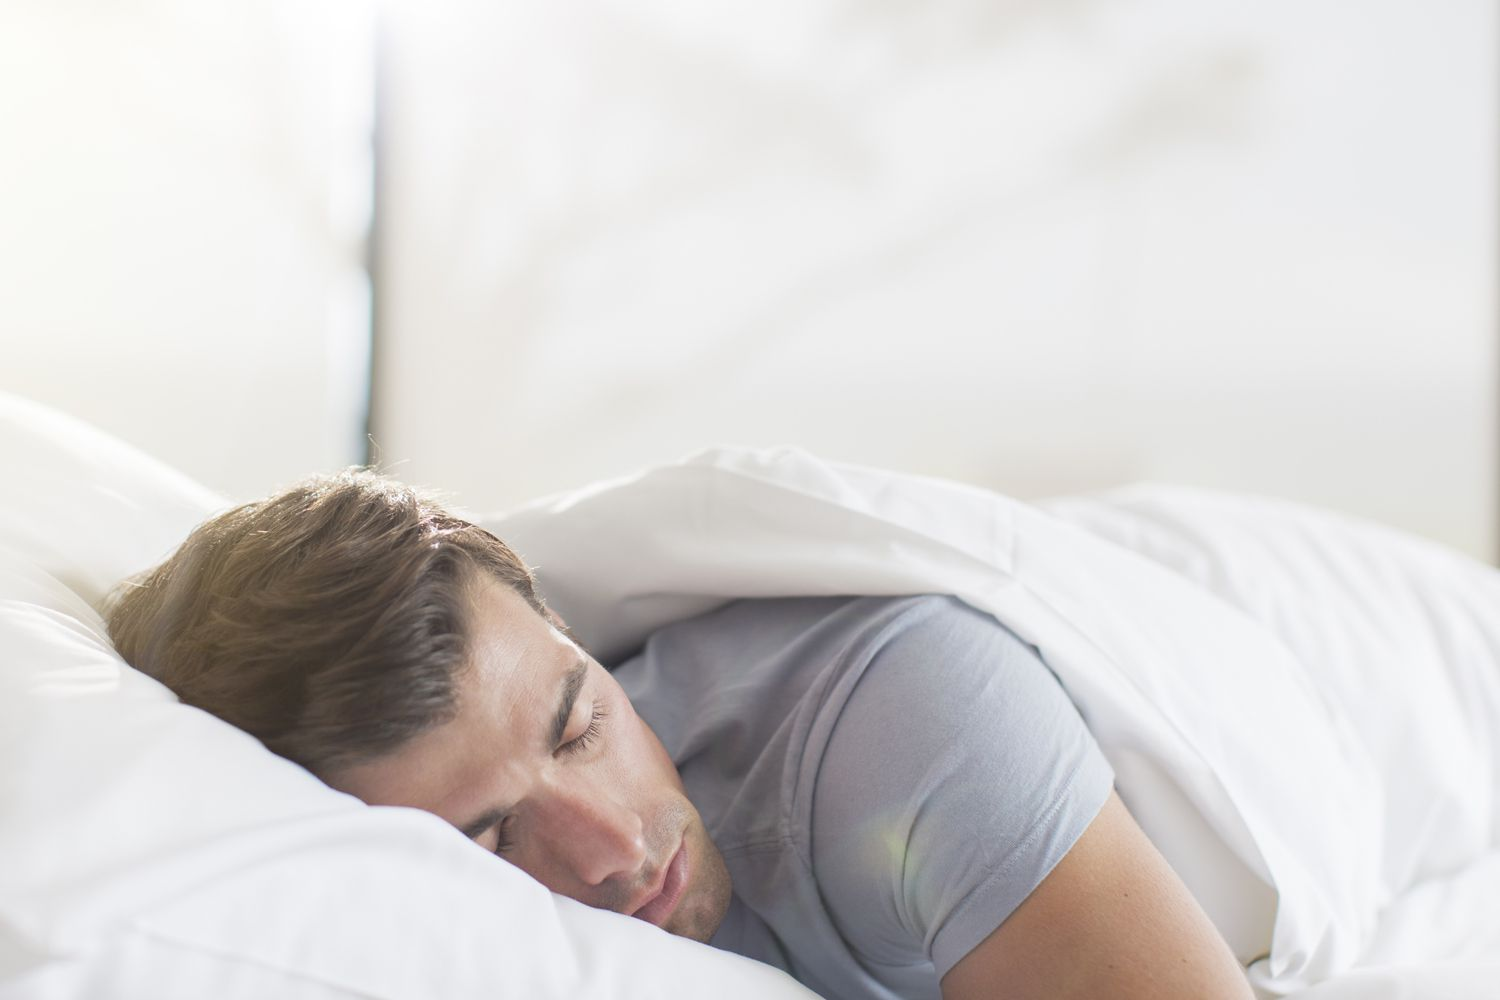 A man sleeping peacefully in his bed